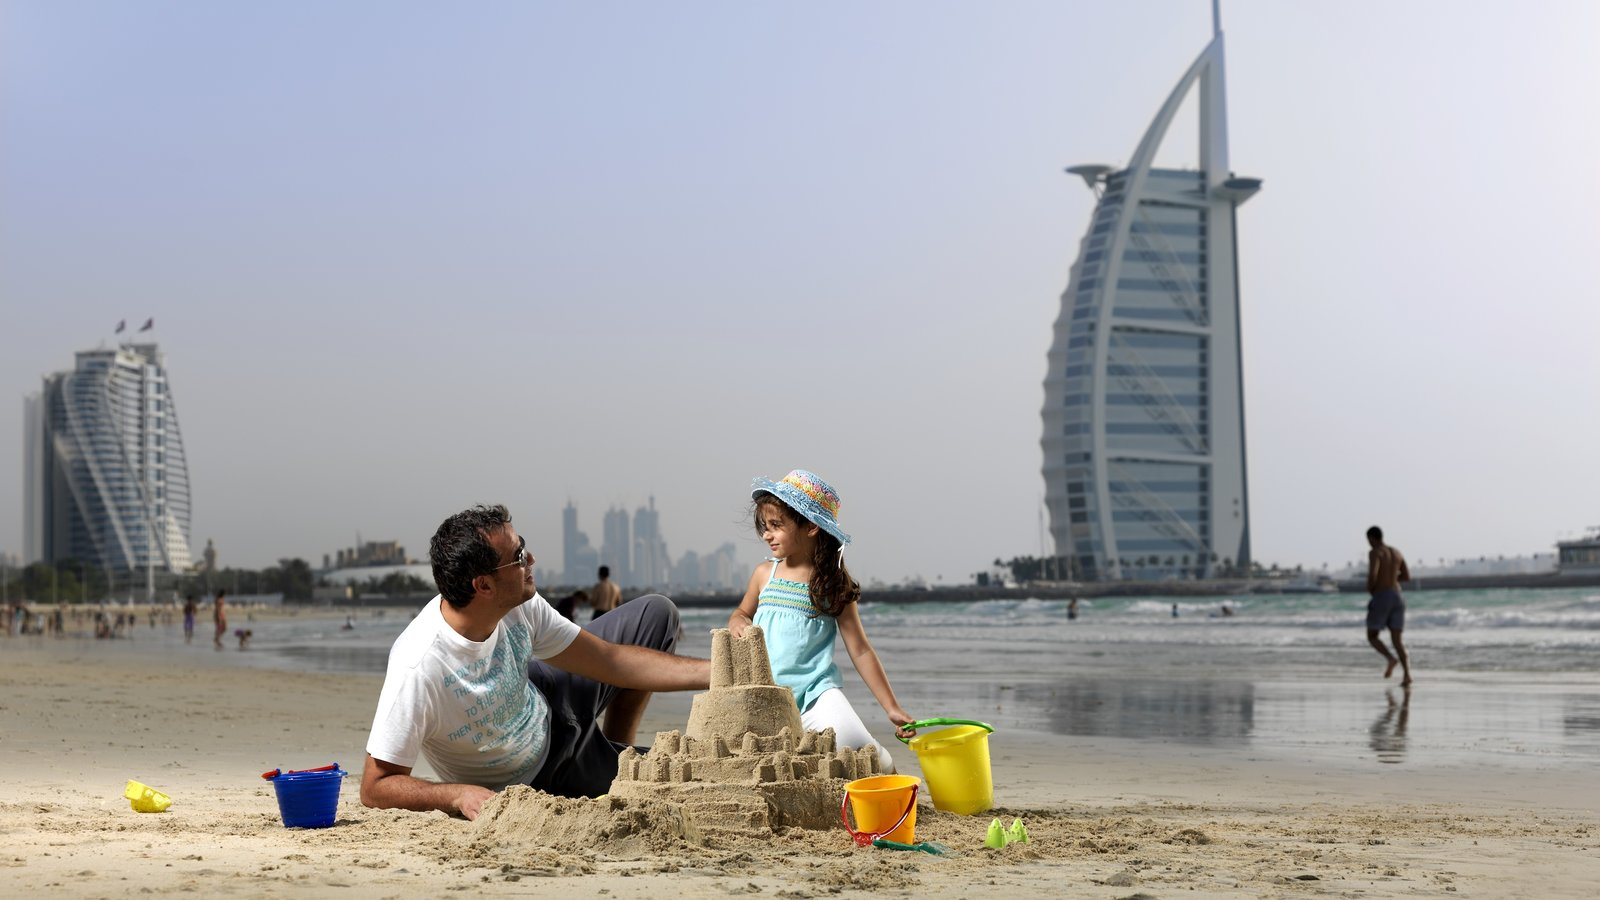 Jumeira Beach and Park showing a sandy beach as well as a small group of people